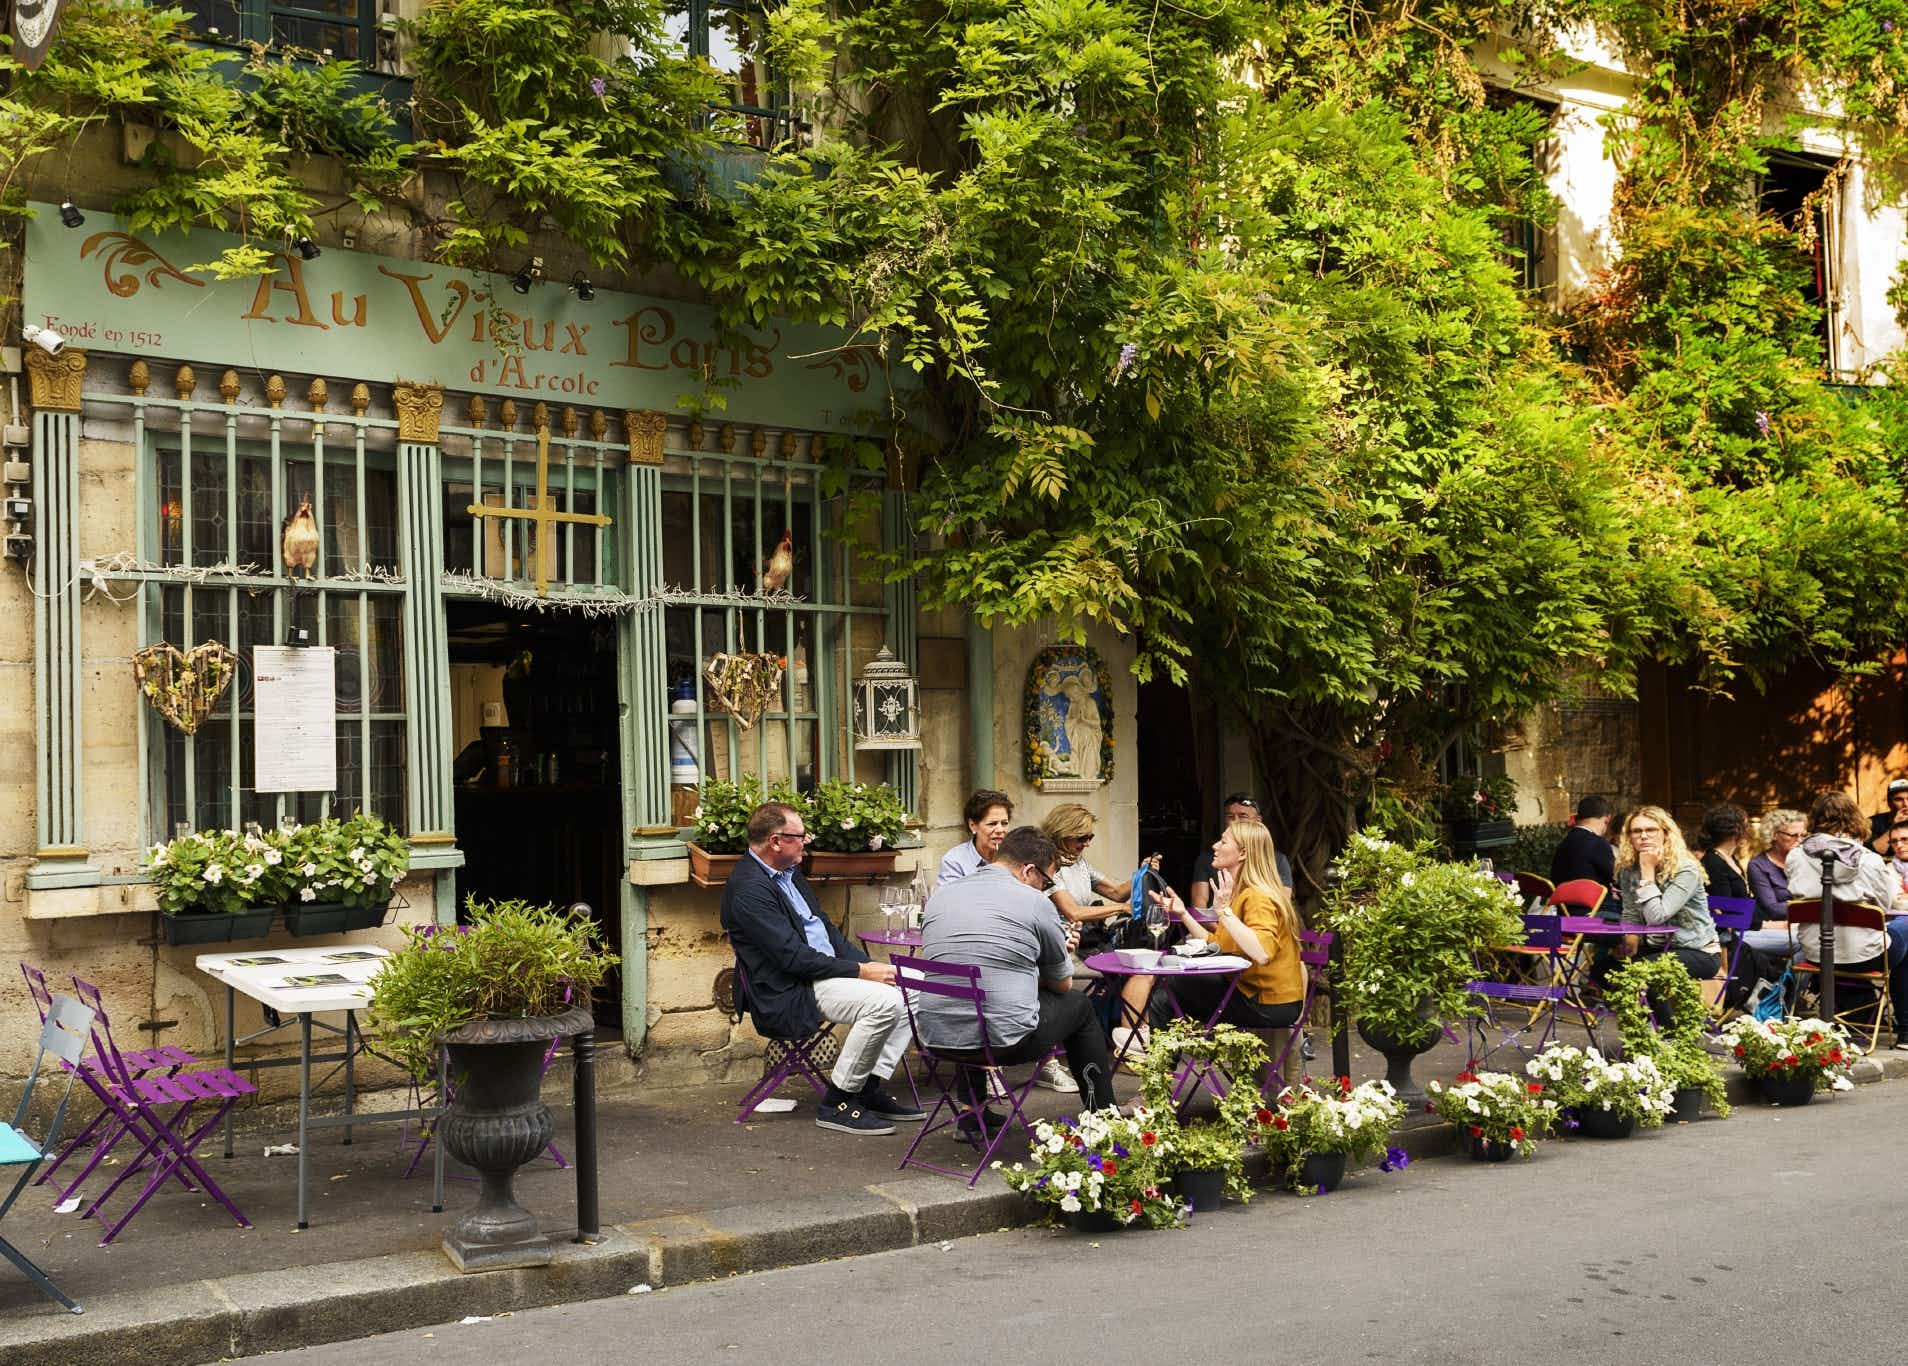 Parisian bistros and cafes seek Unesco 'intangible cultural heritage' status